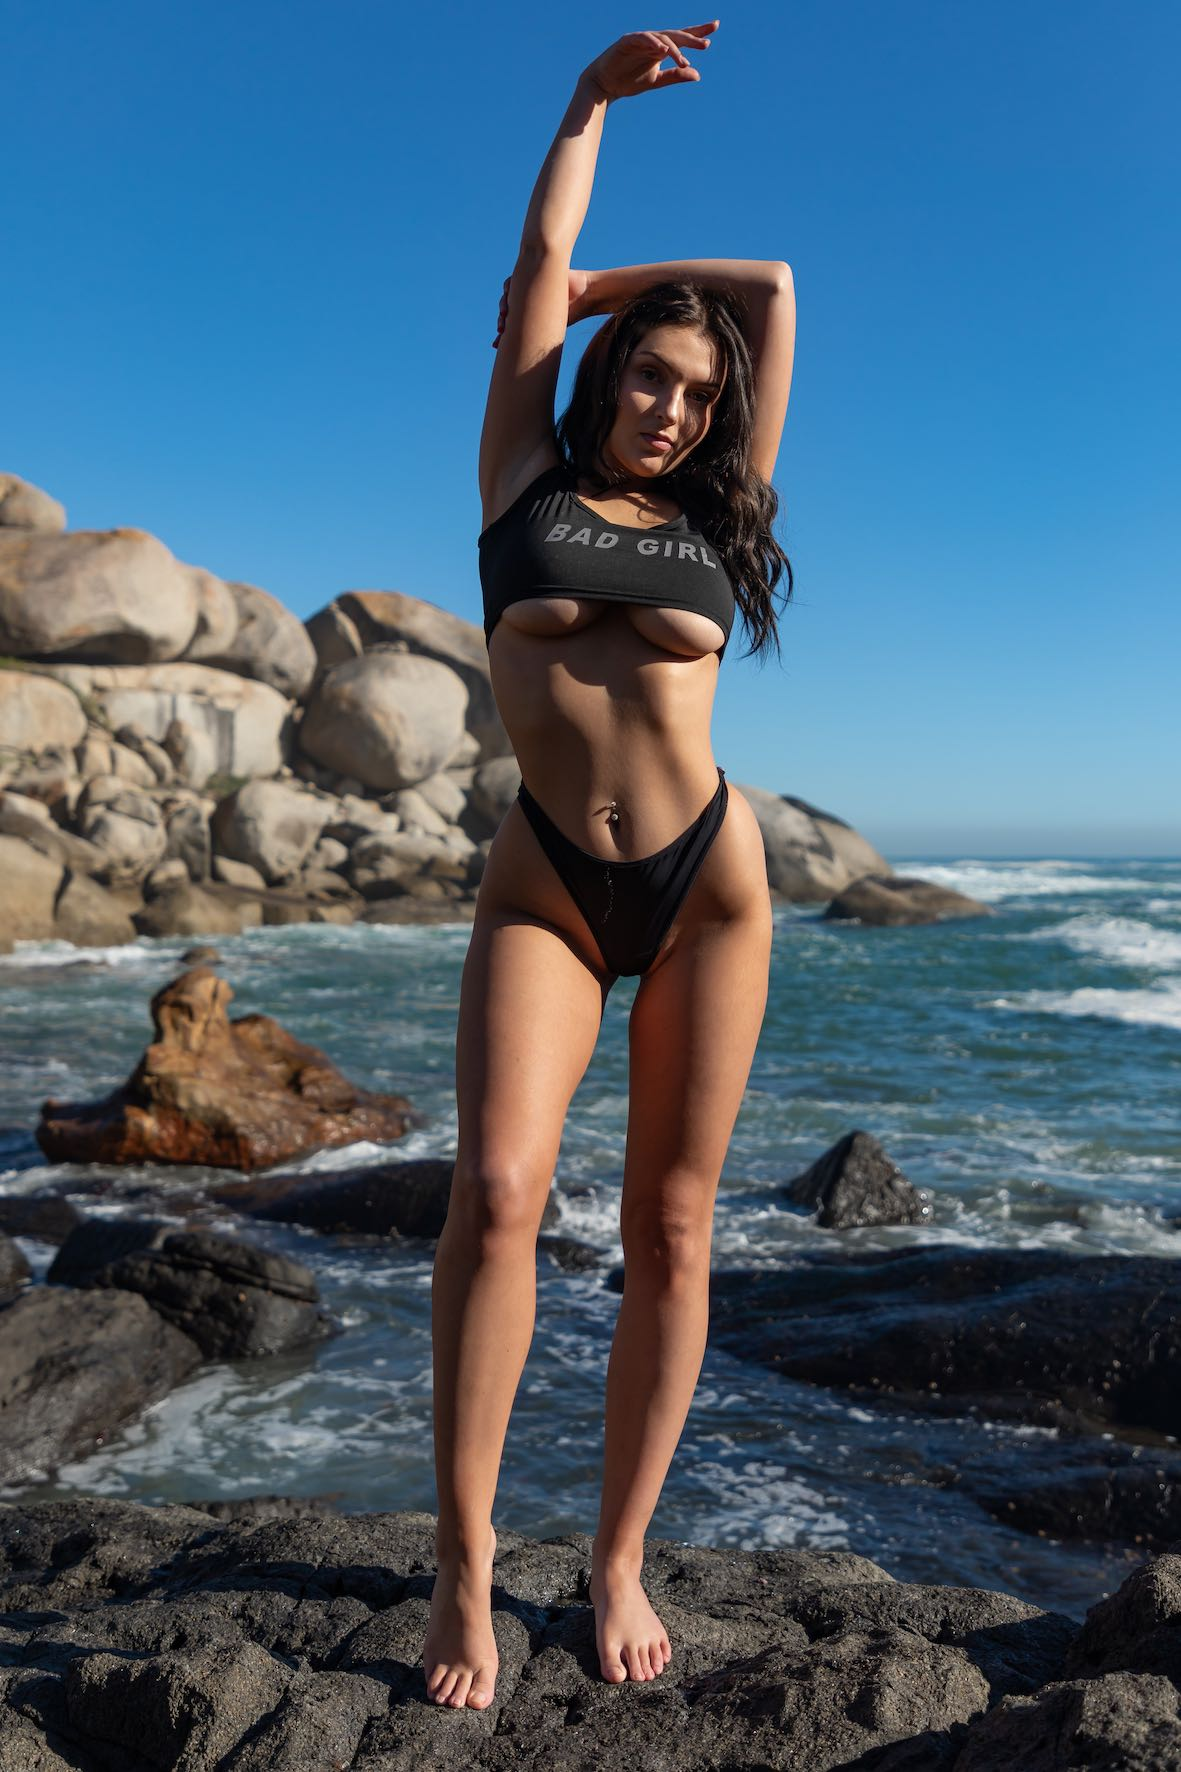 Dominique Wagner features as our LW Babe